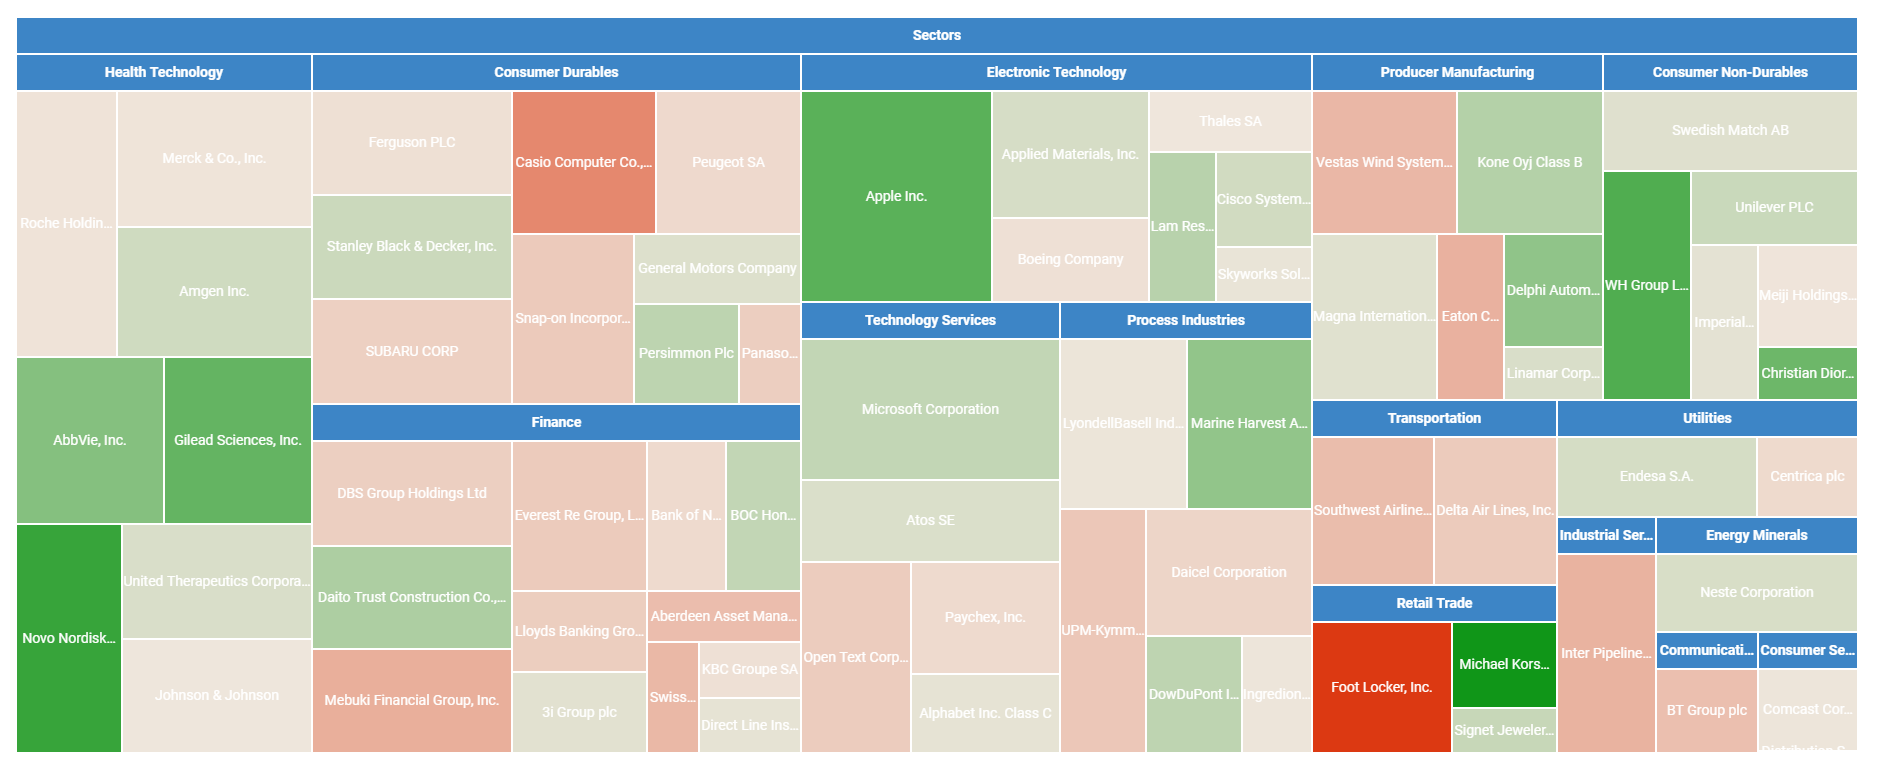 Heatmap of Portfolio performance